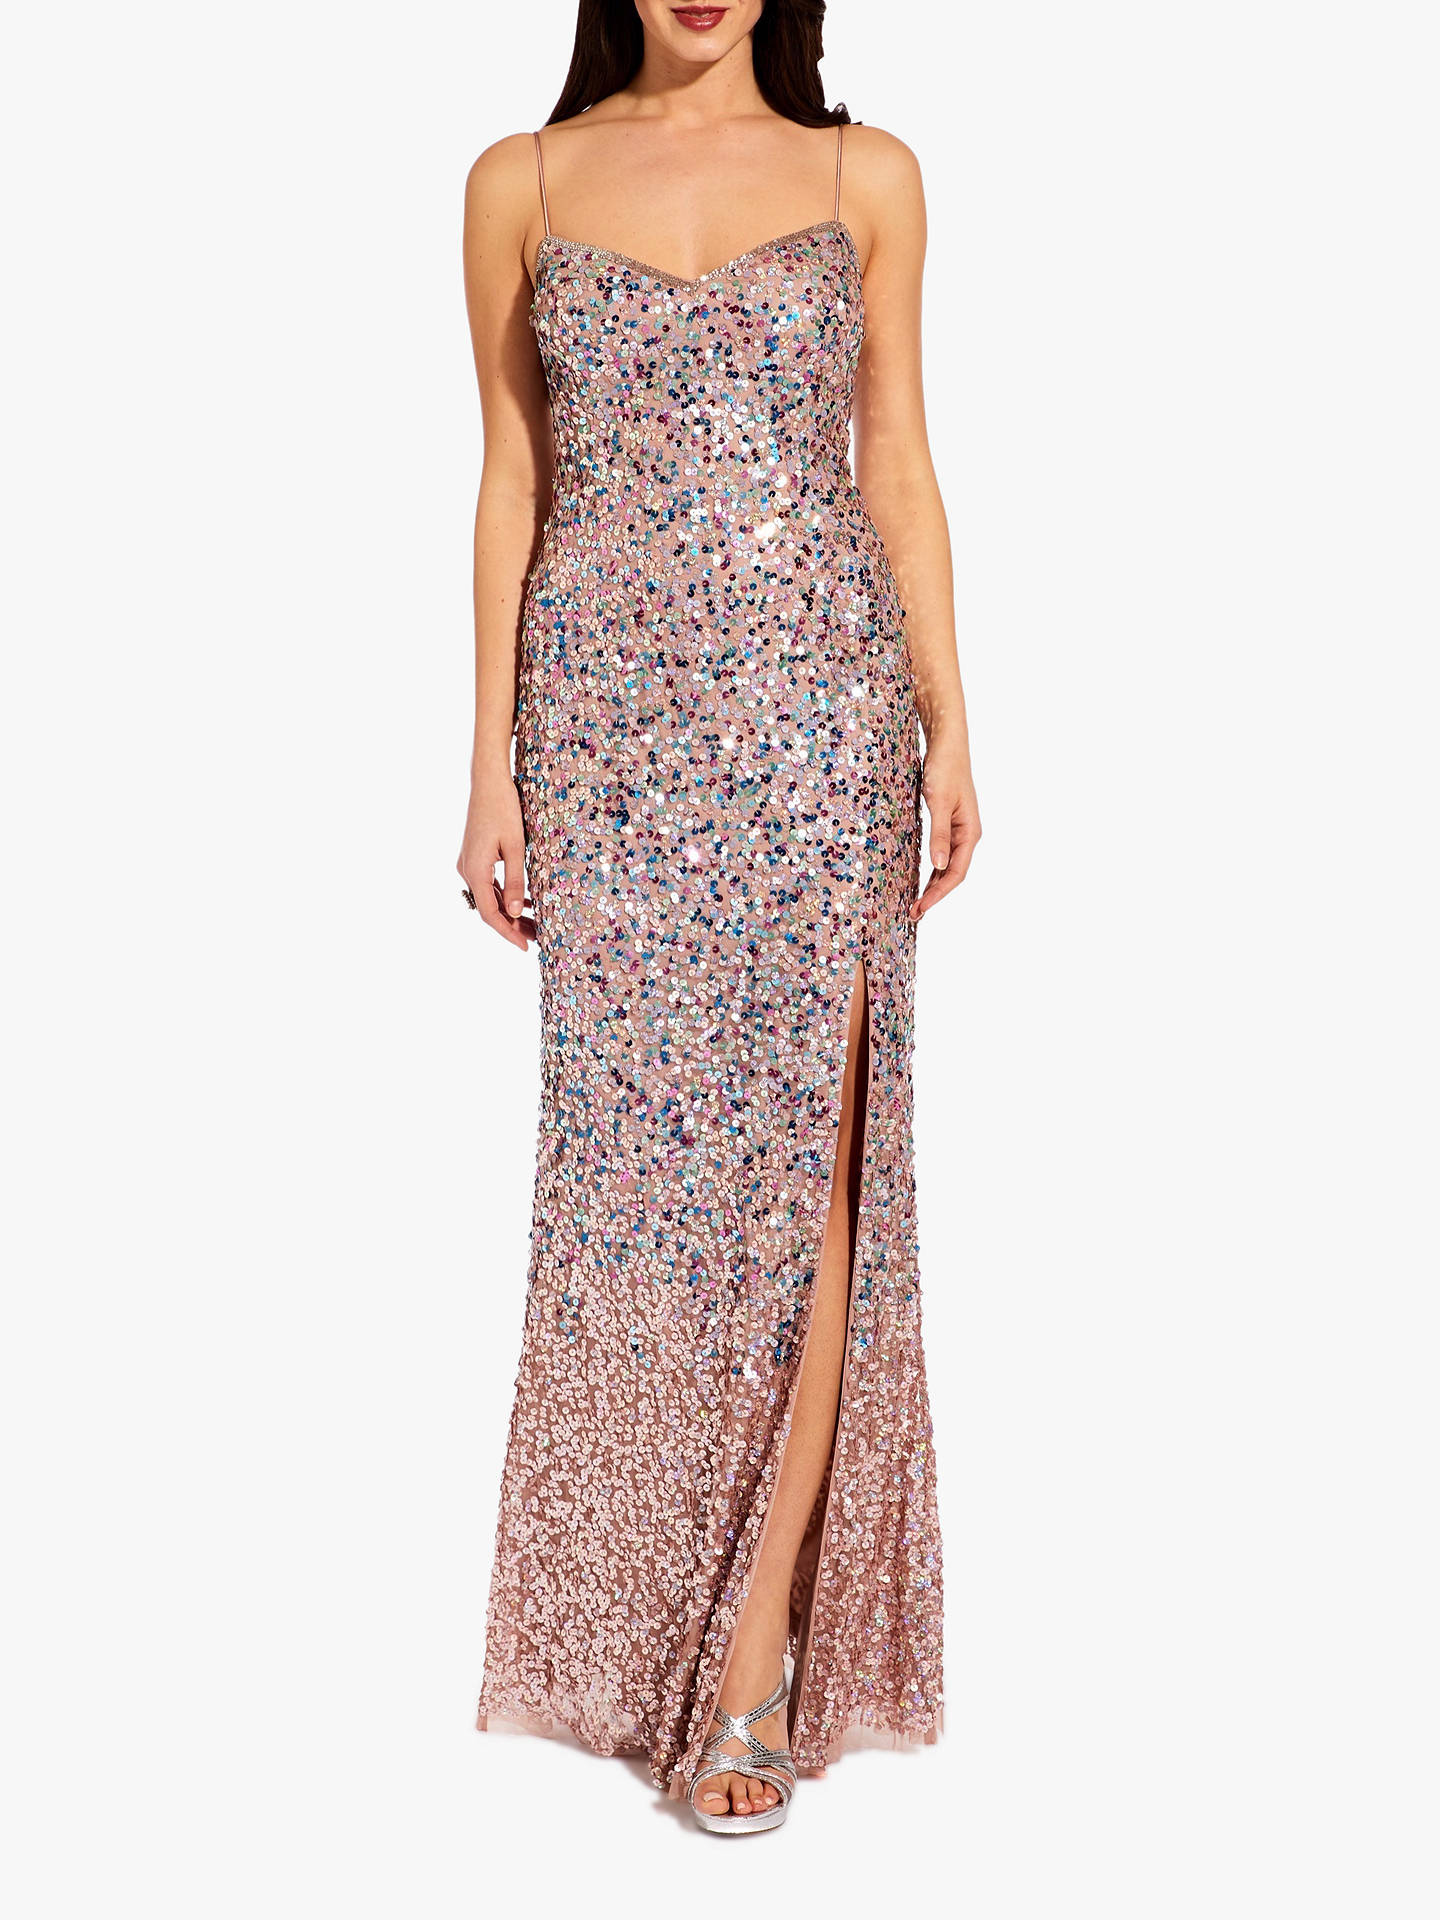 534d8faf4cb98 Buy Adrianna Papell Beaded Sequin Mesh Maxi Dress, Rose Gold, 12 Online at  johnlewis ...